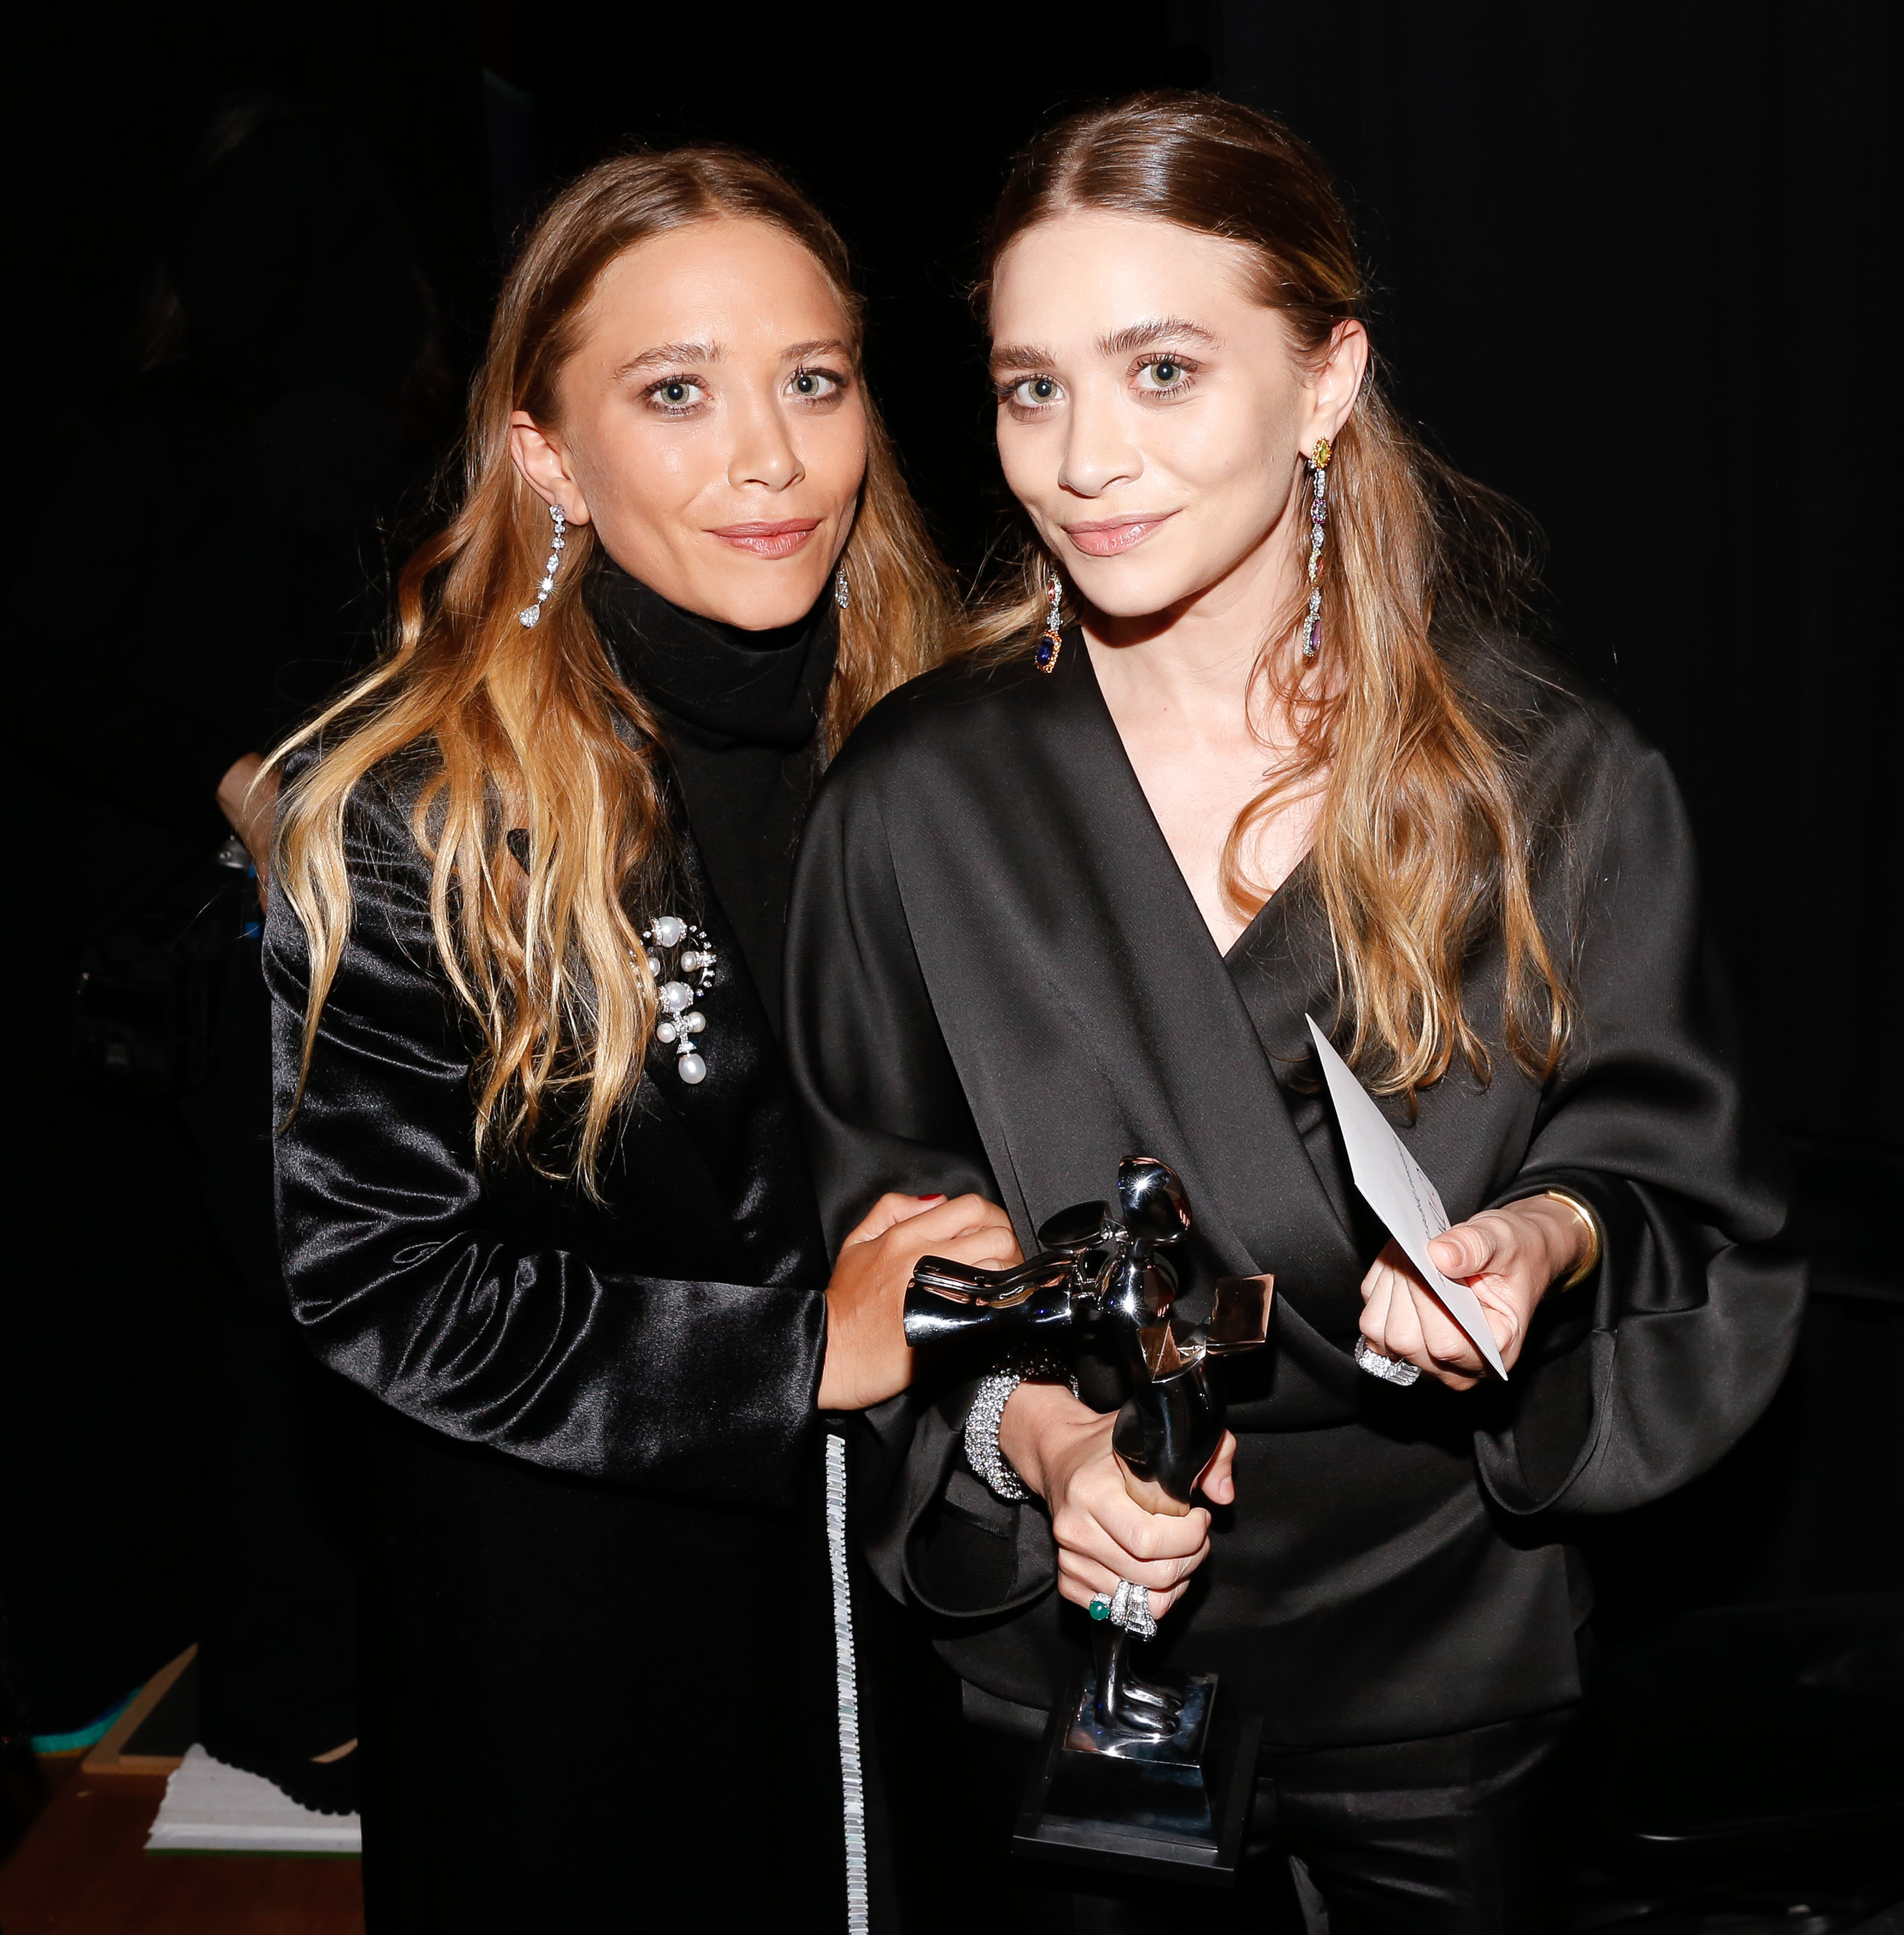 Winners Announced At The 2015 CFDA Fashion Awards In Collaboration With Swarovski